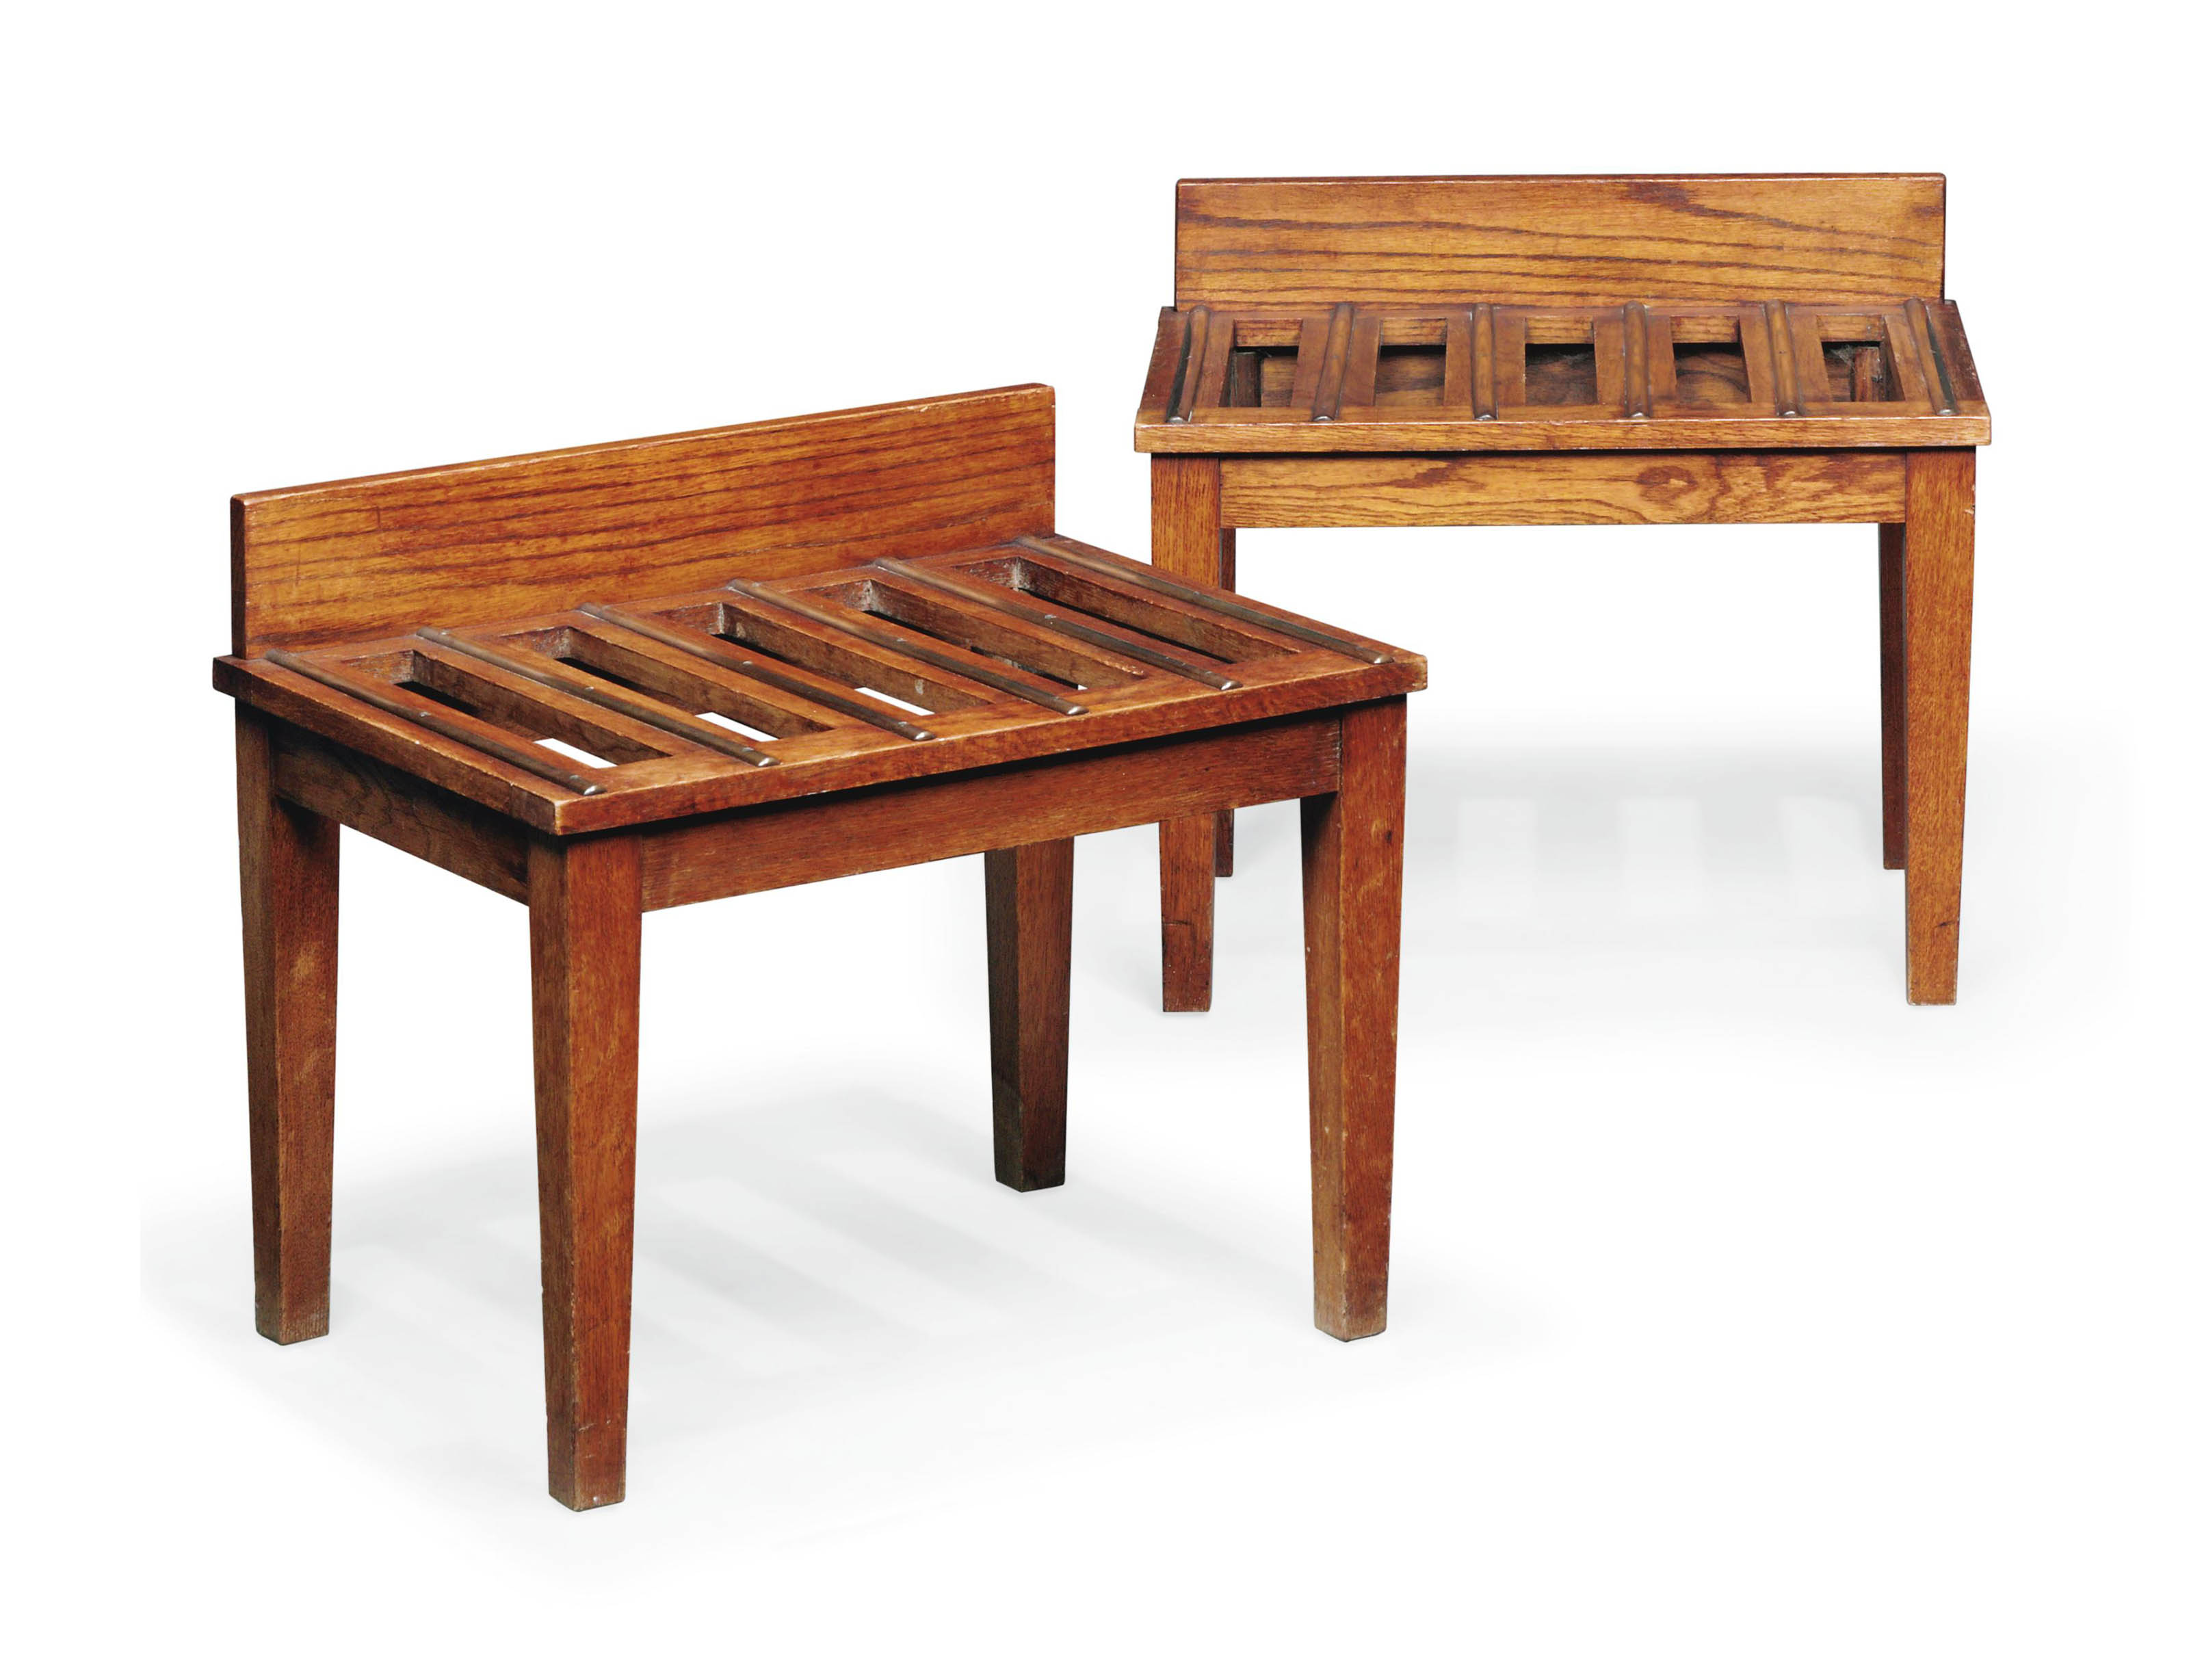 A PAIR OF ENGLISH BRASS-MOUNTED OAK LUGGAGE STANDS